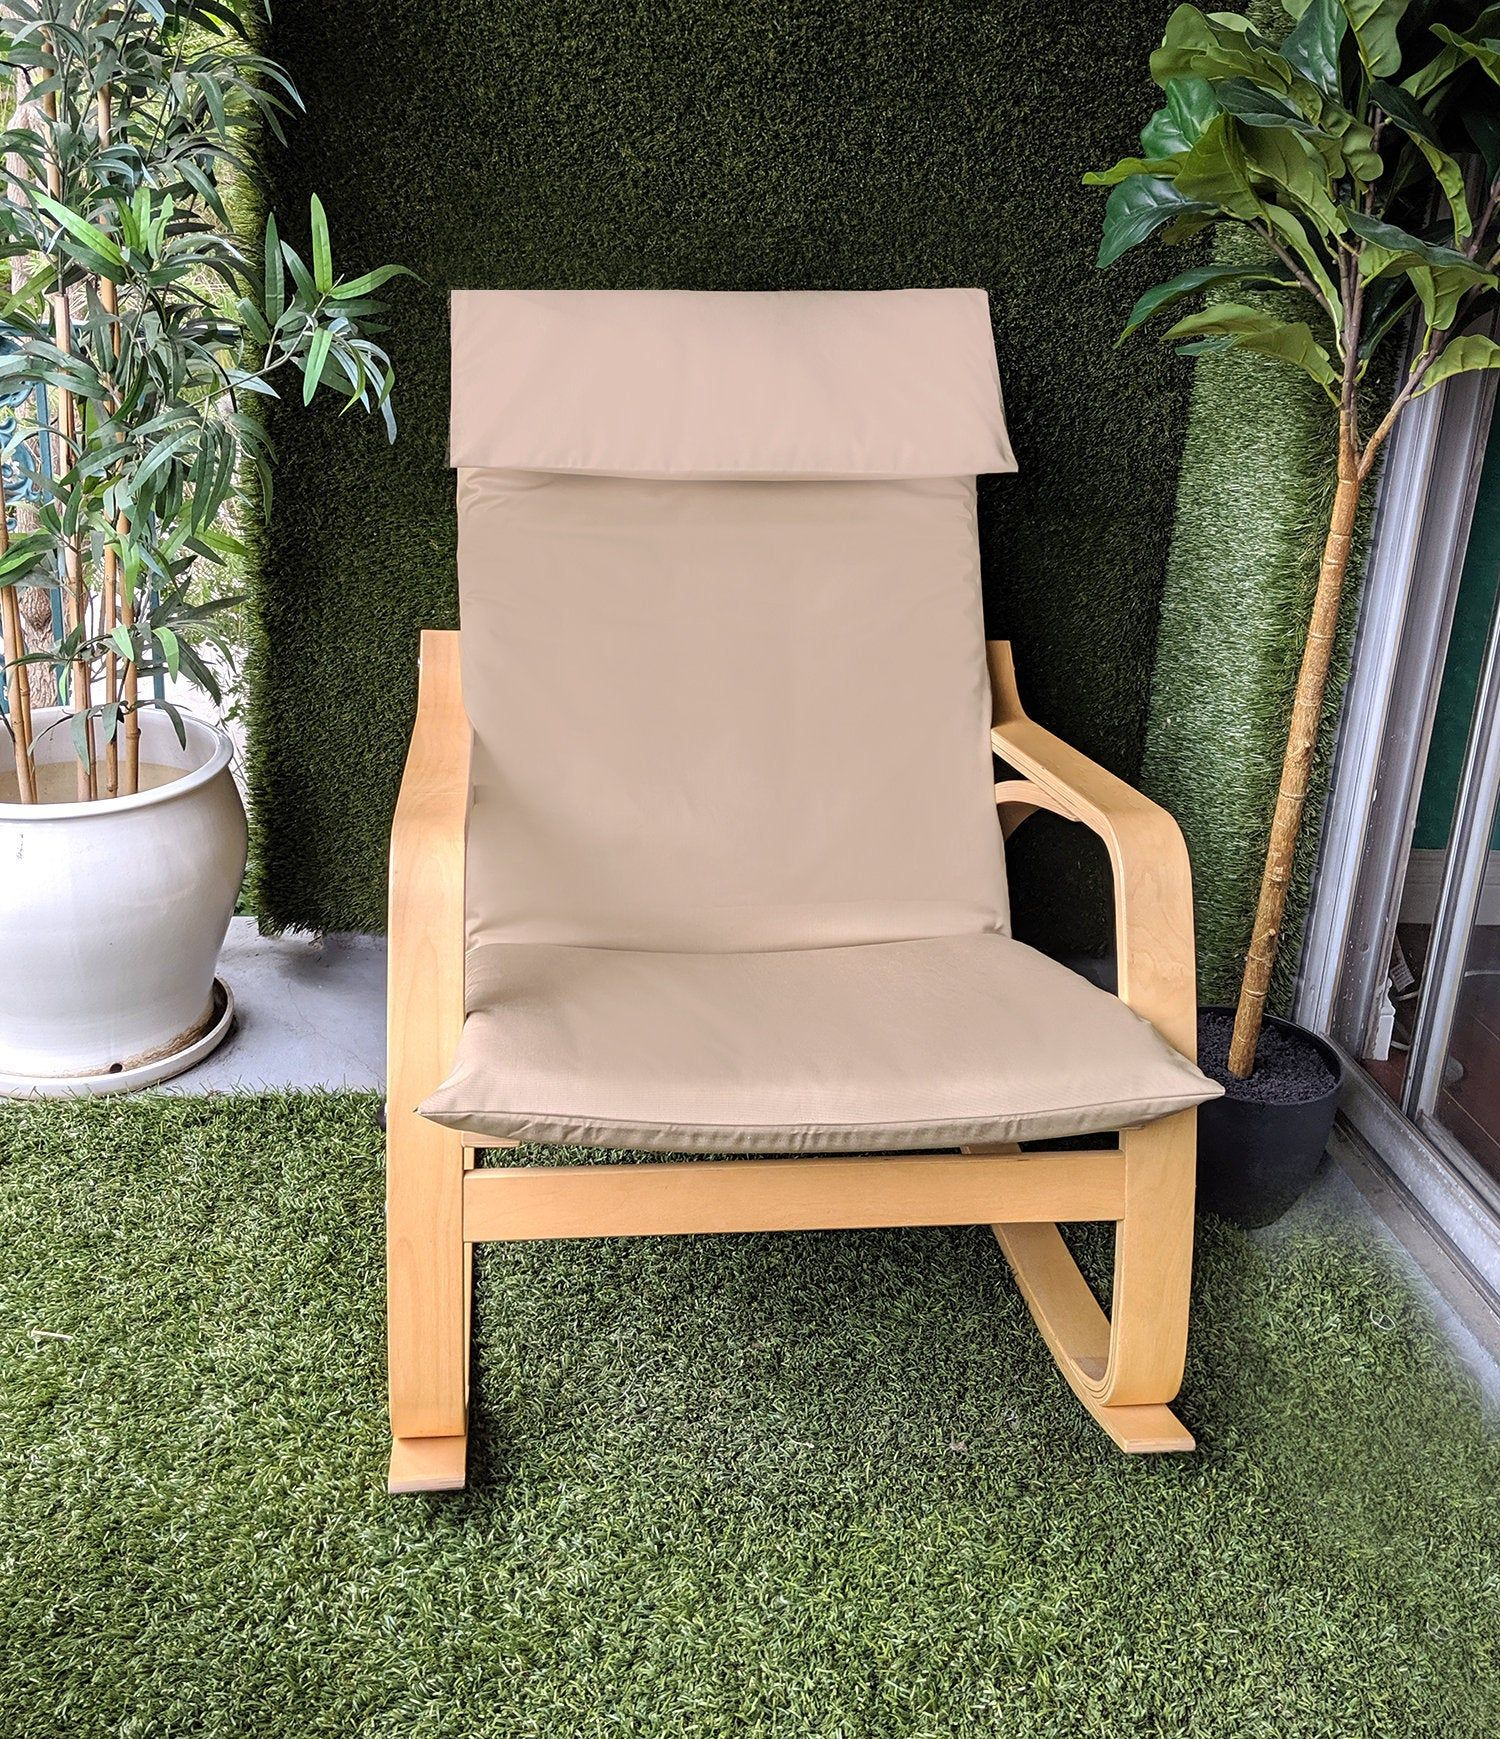 Solid Tan Beige Ikea Poang Chair Cover Ikea poang chair